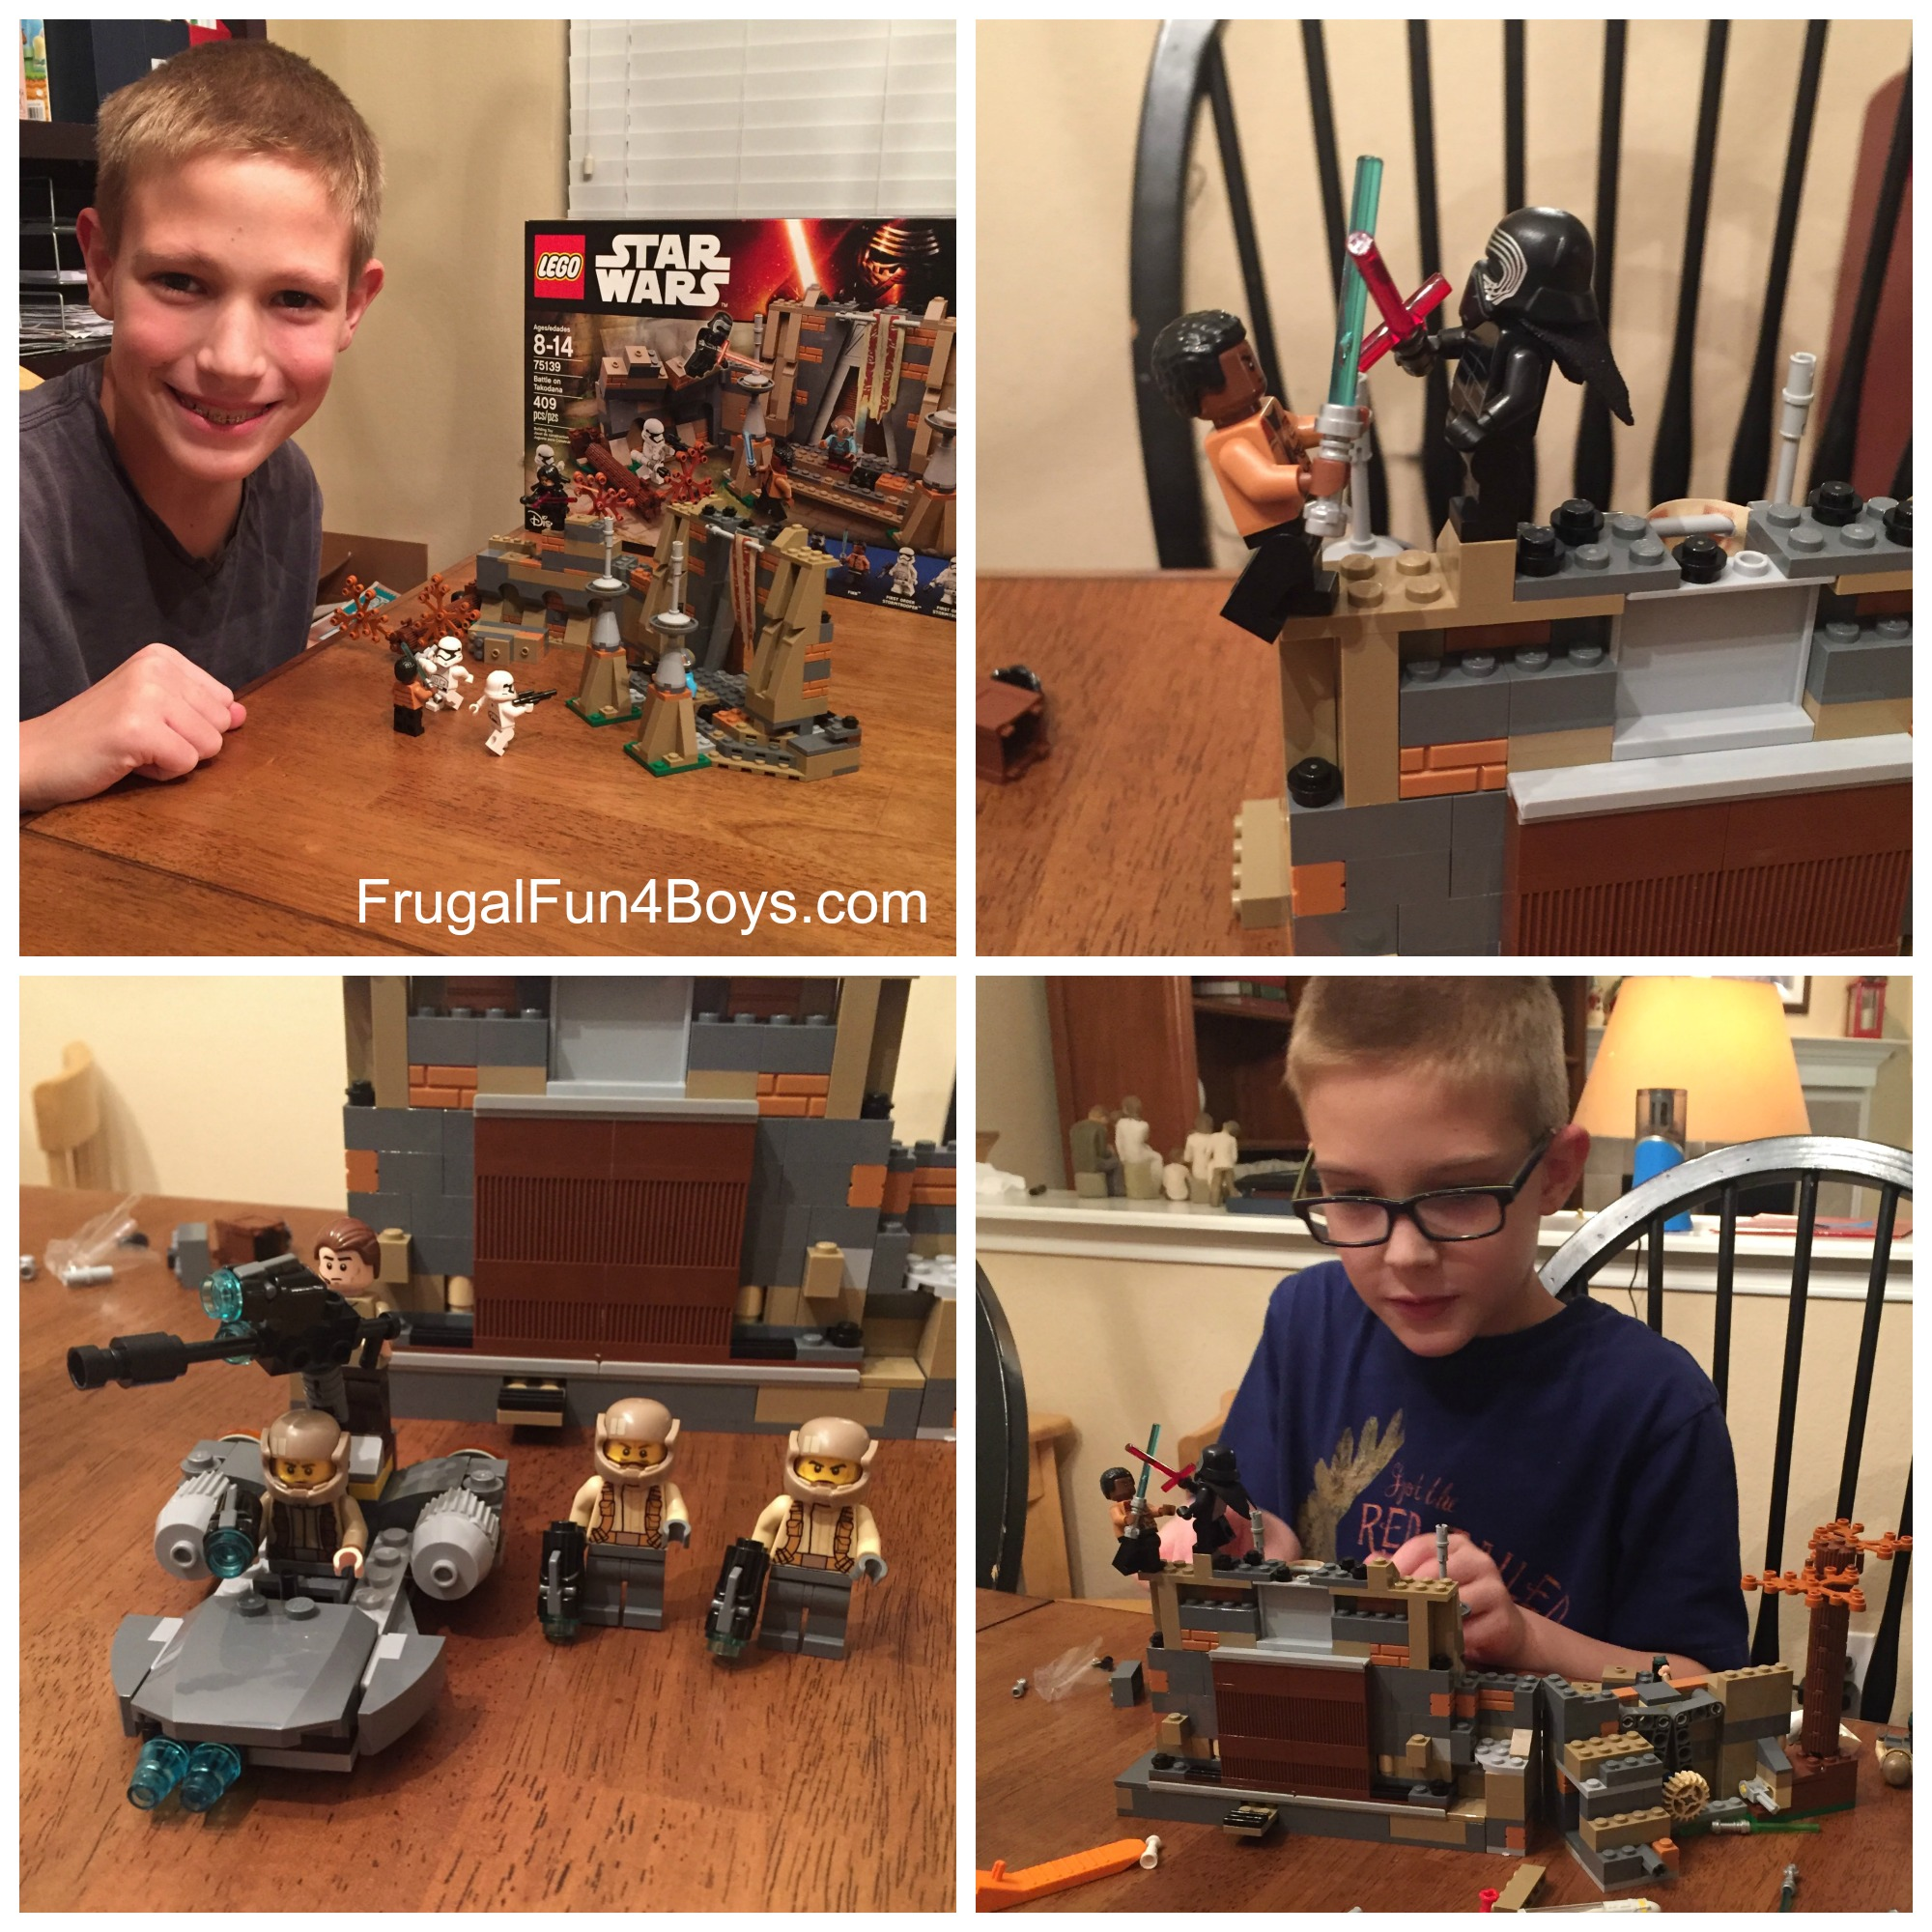 New LEGO Star Wars sets for The Force Awakens